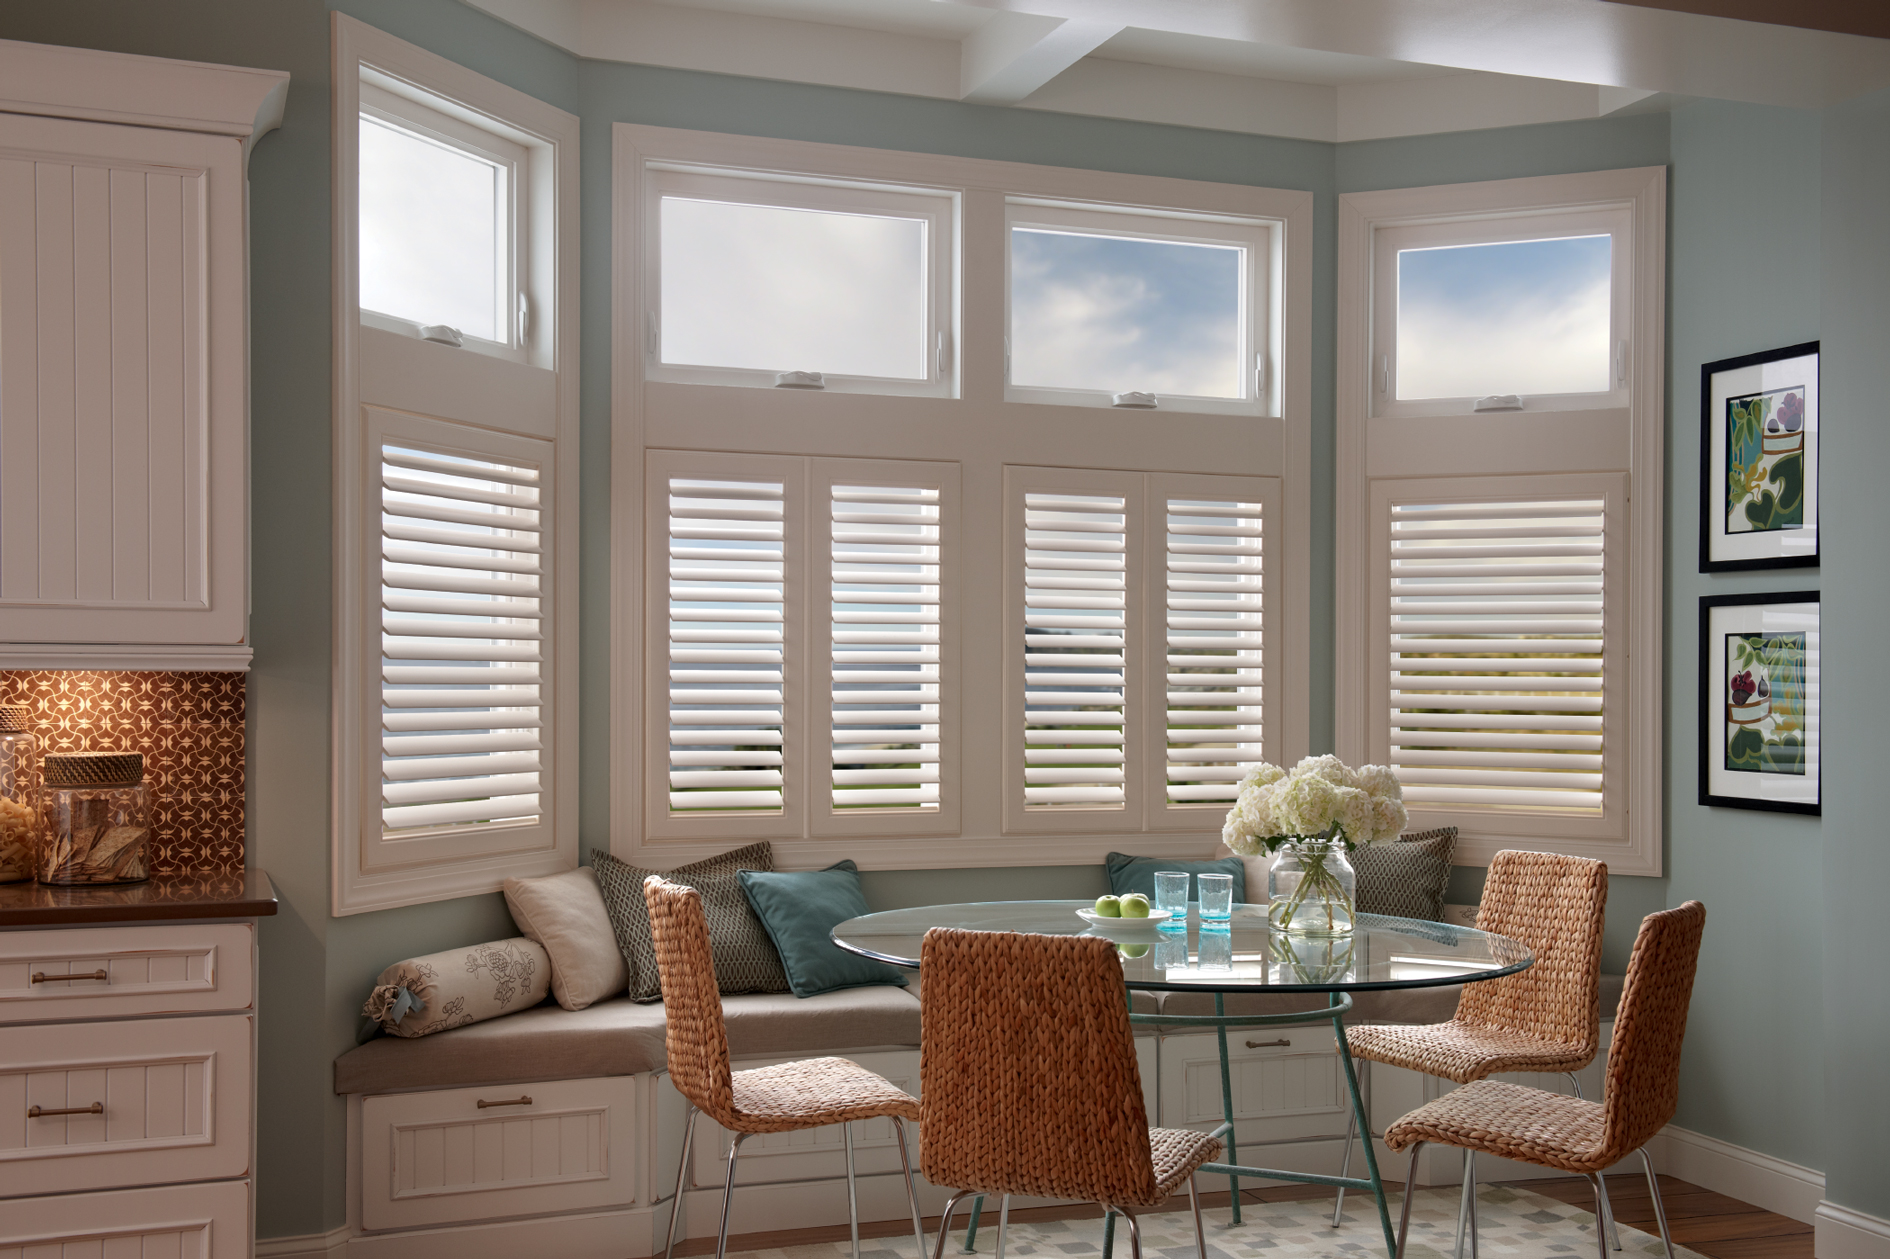 Picture of: Basement Window Blinds Ideas